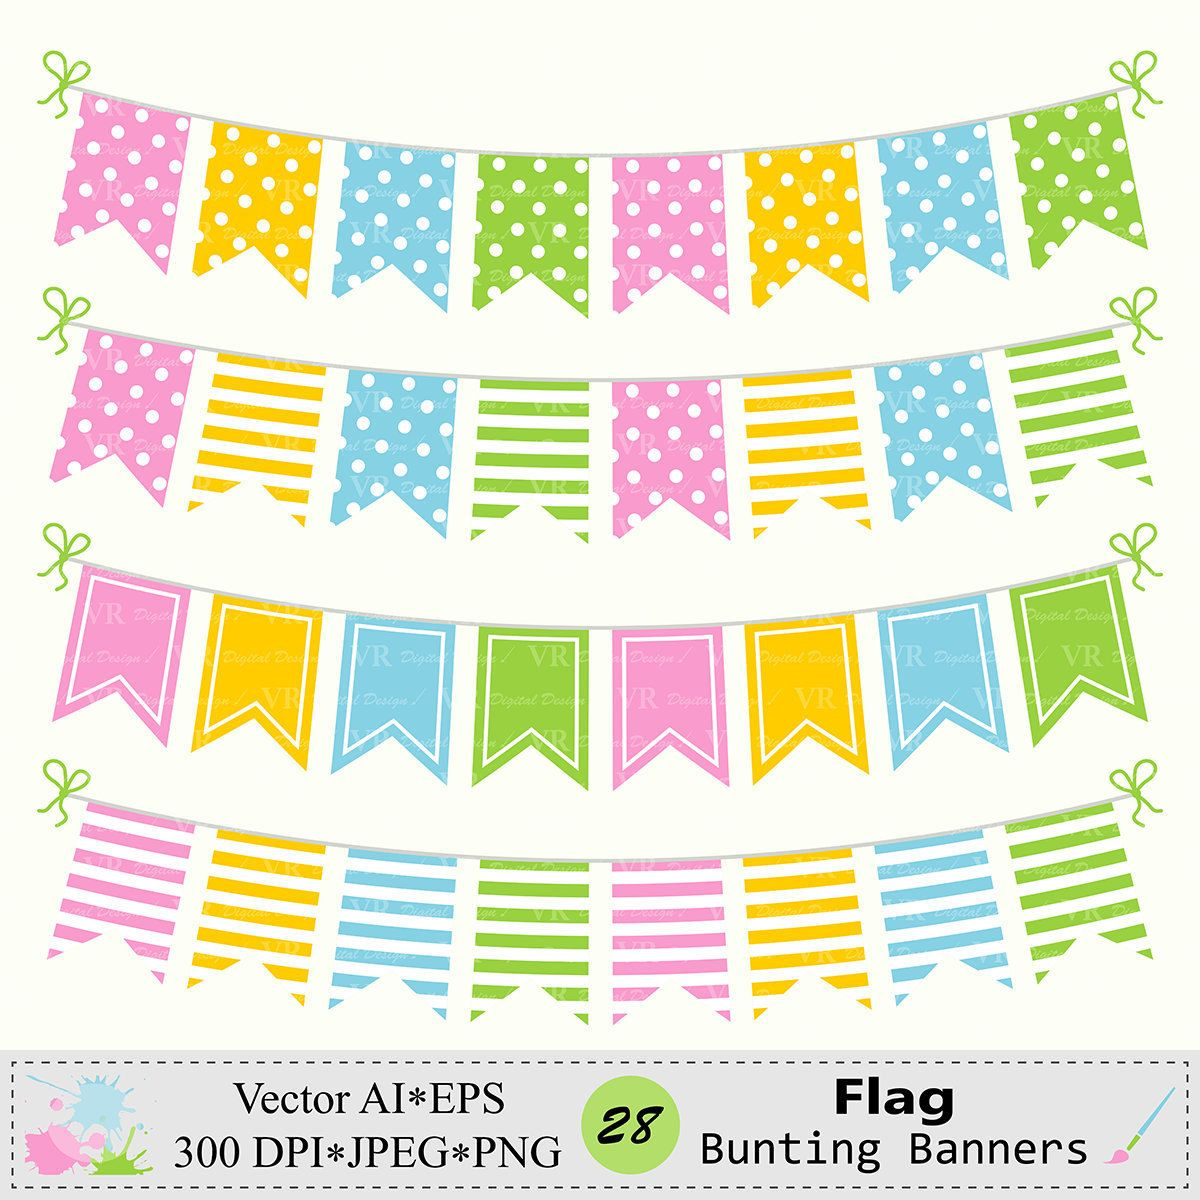 Flag Bunting Banners Clip Art Birthday Party Bunting Banners Etsy Banner Clip Art Bunting Banner Art Birthday Party